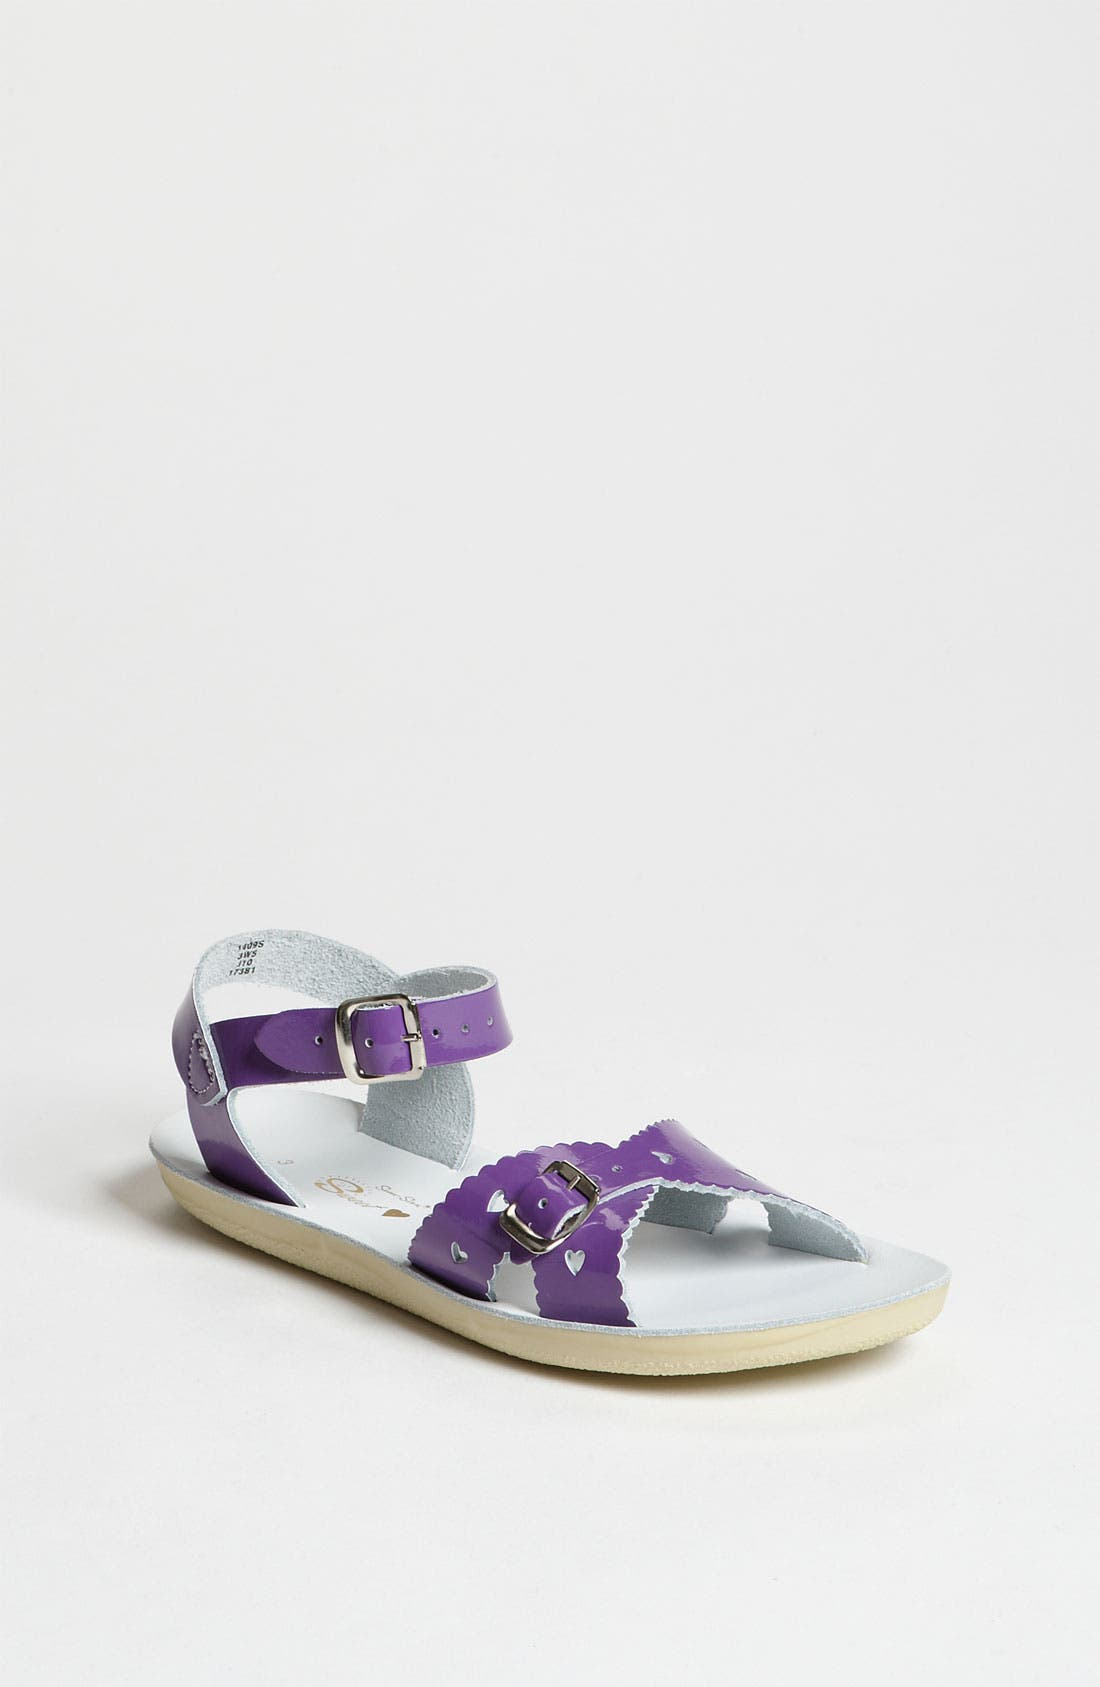 Main Image - Salt Water Sandals by Hoy 'Sweetheart' Sandal (Walker, Toddler & Little Kid)